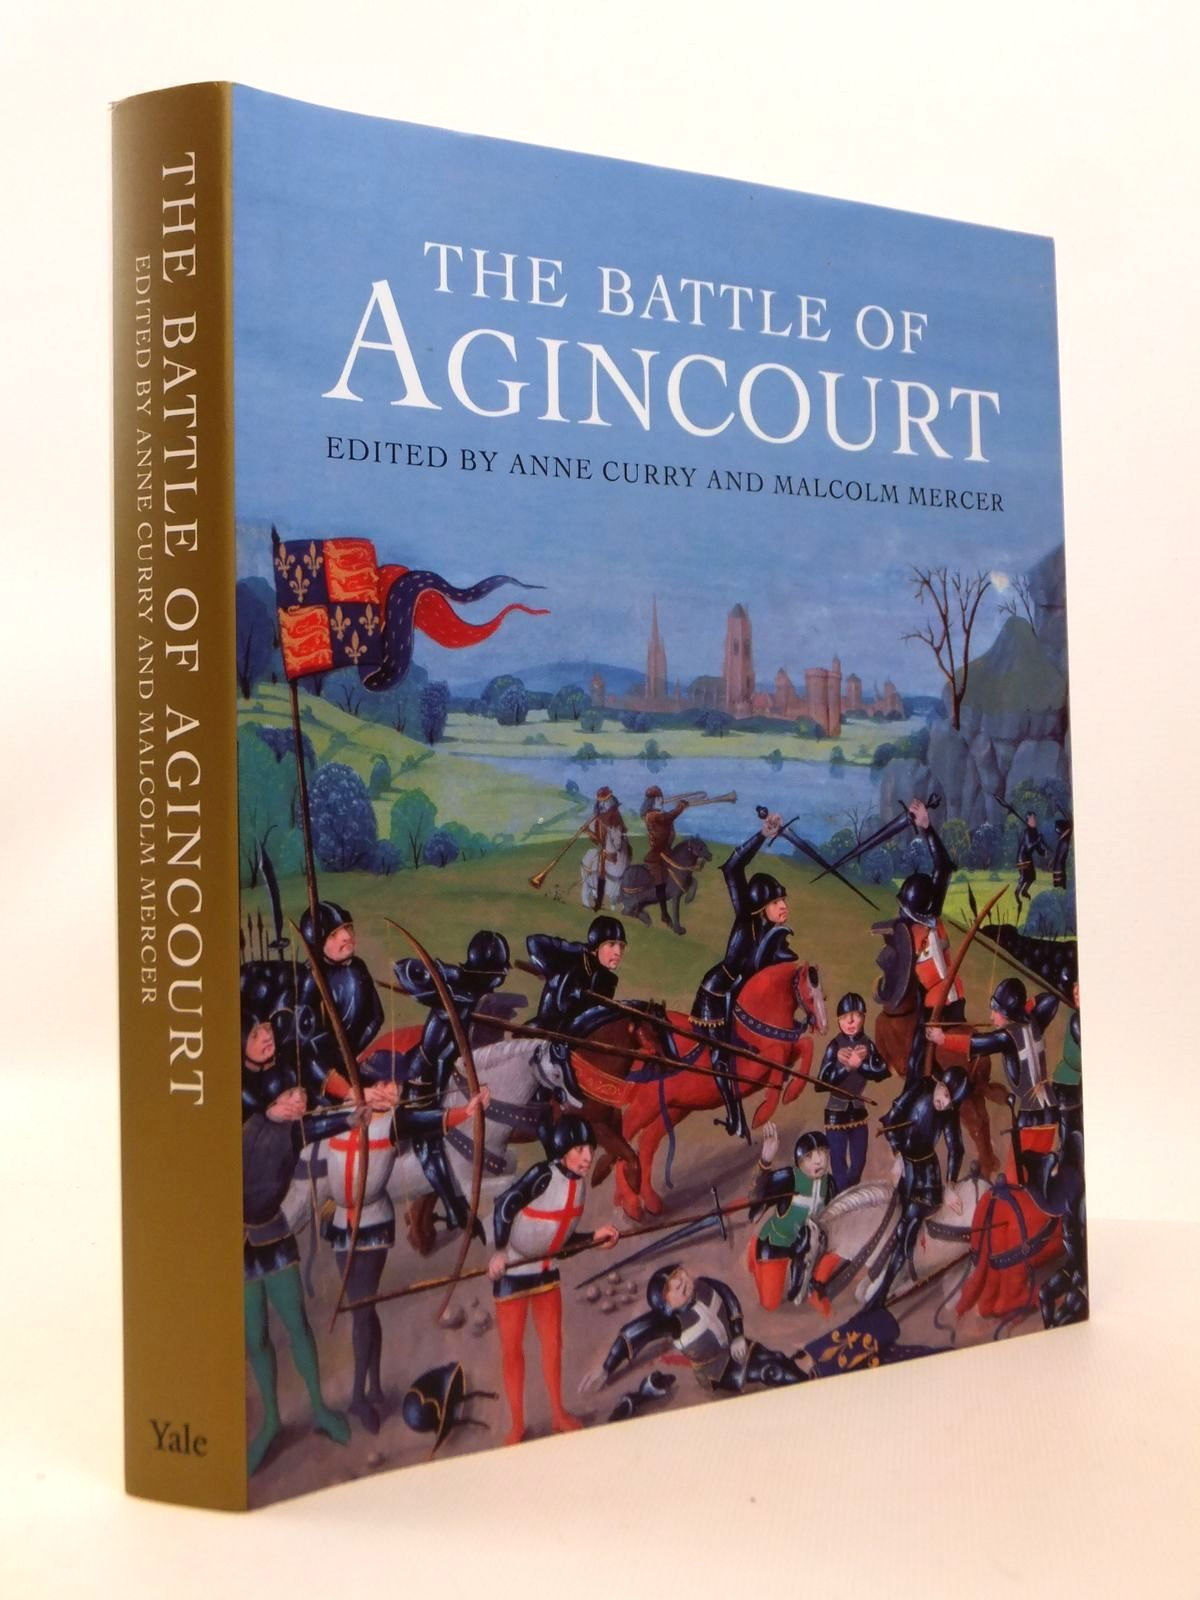 Photo of THE BATTLE OF AGINCOURT written by Curry, Anne Mercer, Malcolm published by Yale University Press (STOCK CODE: 1812544)  for sale by Stella & Rose's Books